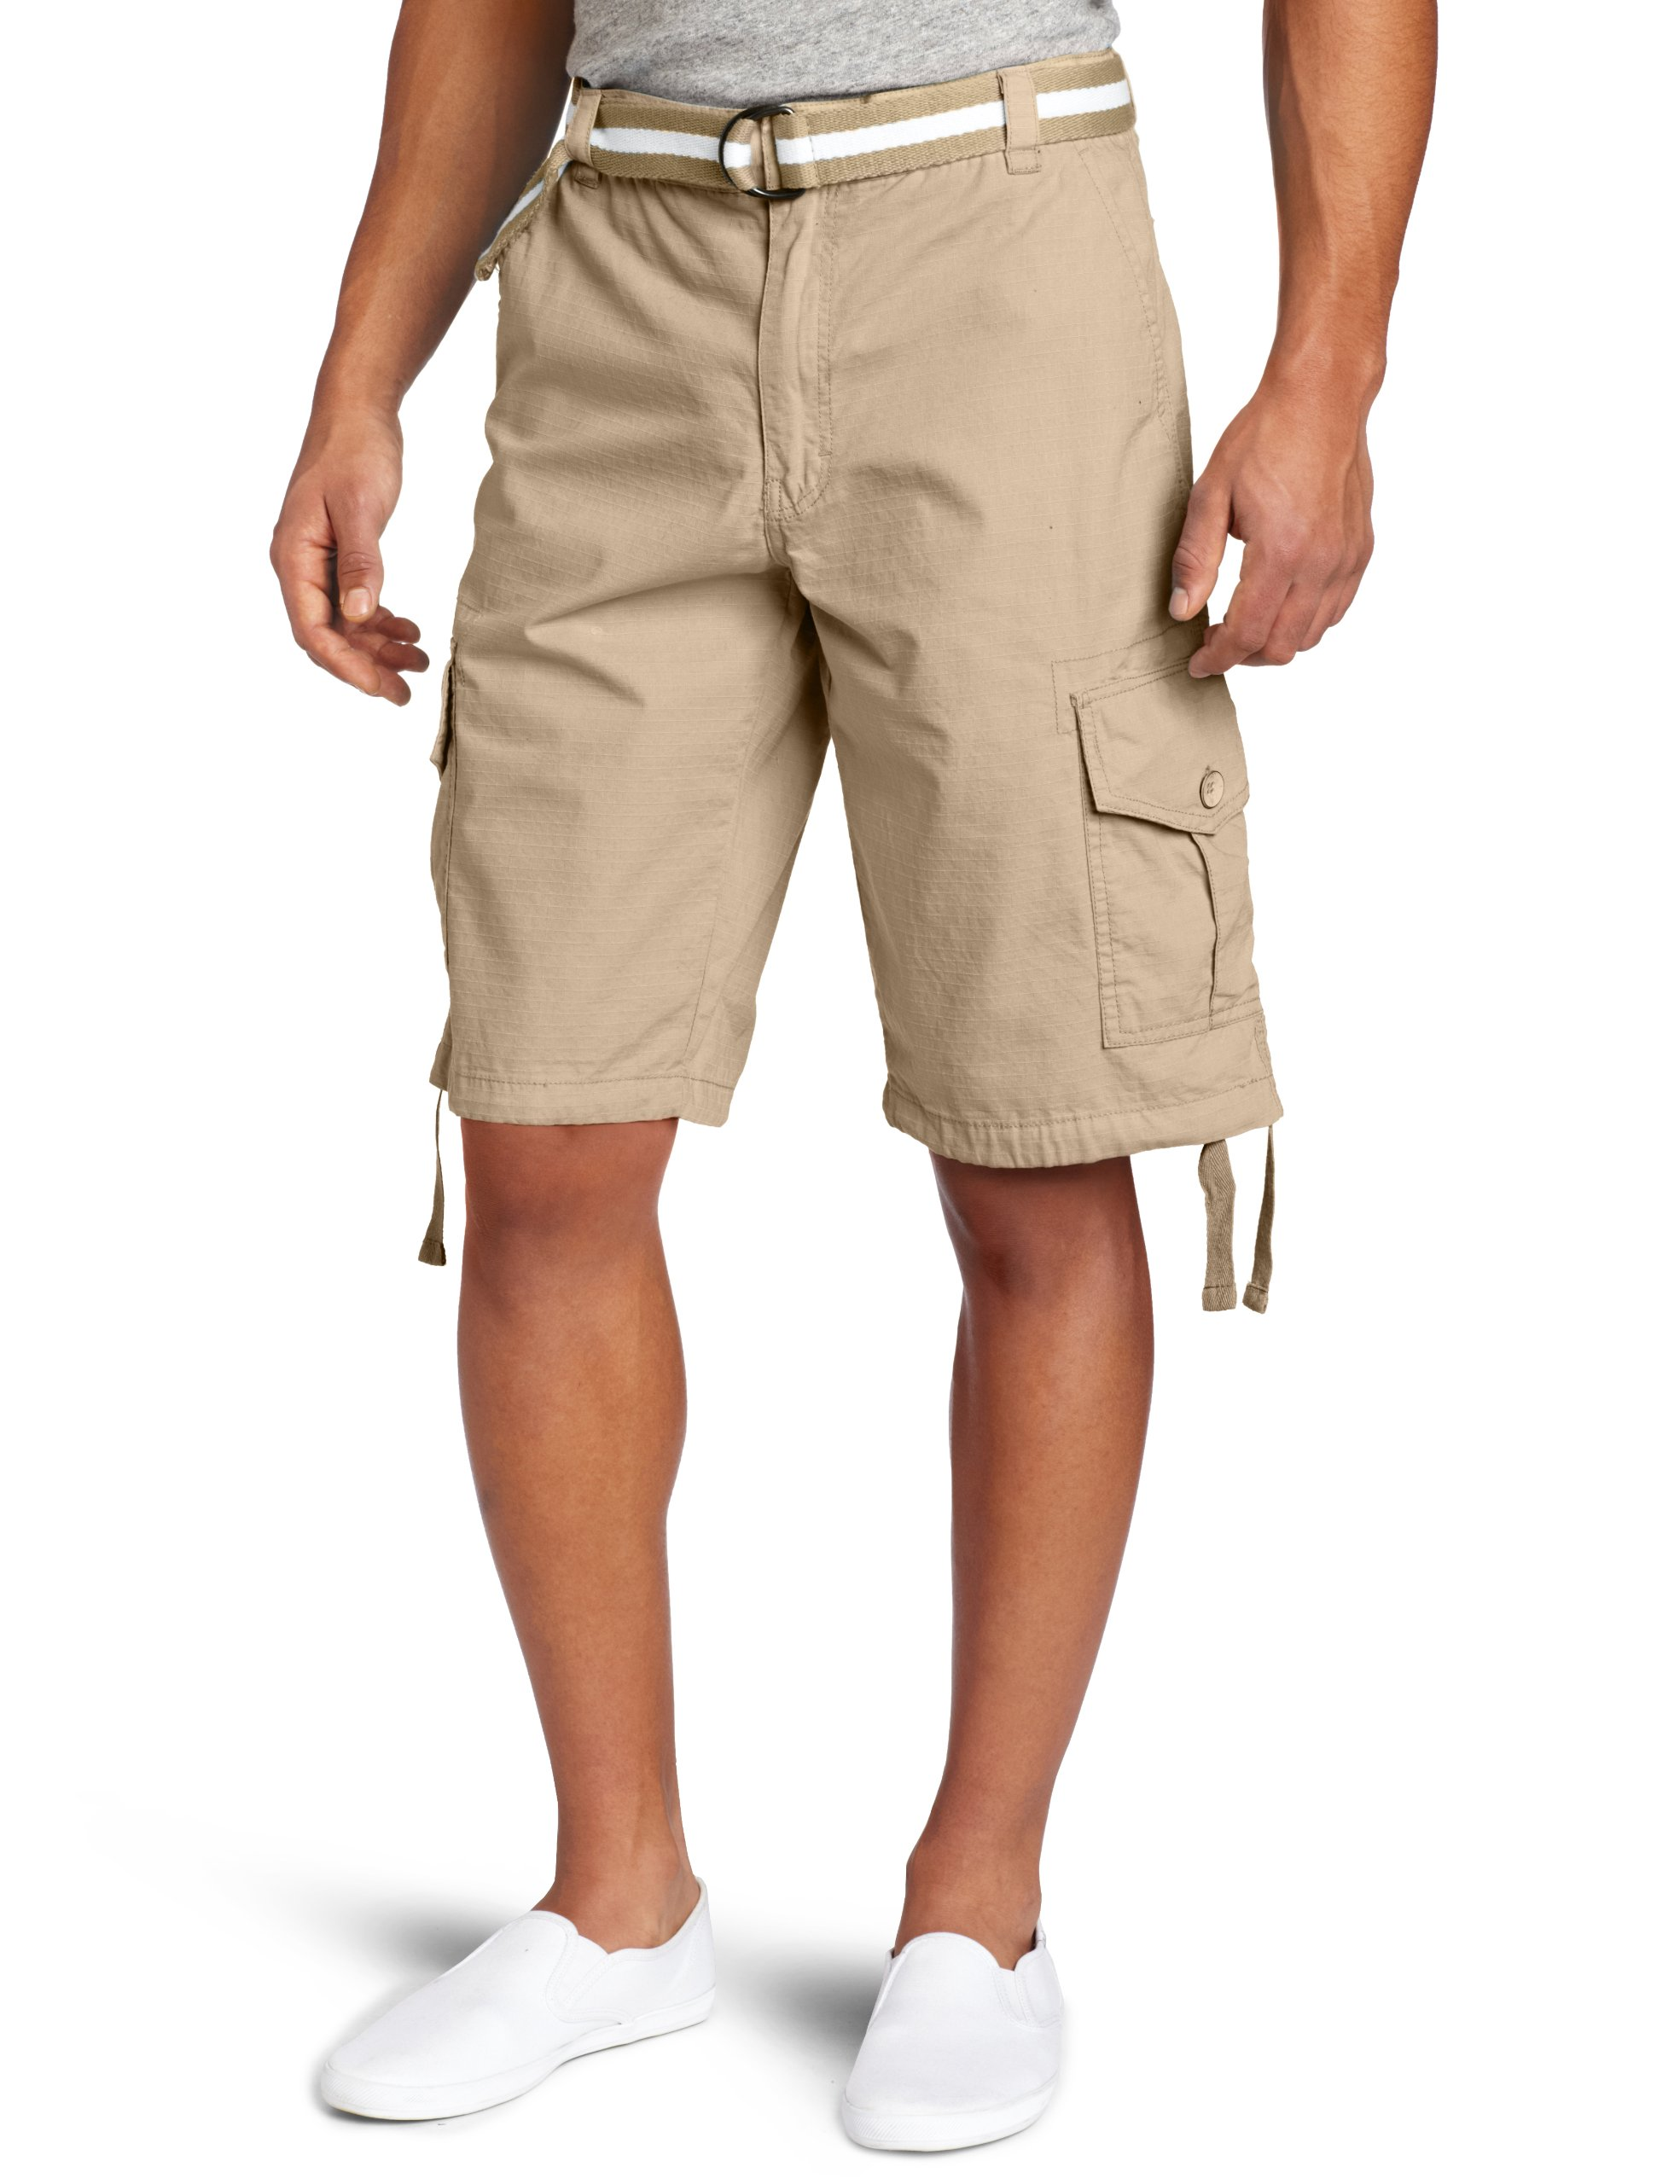 Southpole Men's Belted Ripstop Basic Cargo Short with Washing and 13.5 Inch Length All Season, Deep Khaki,46